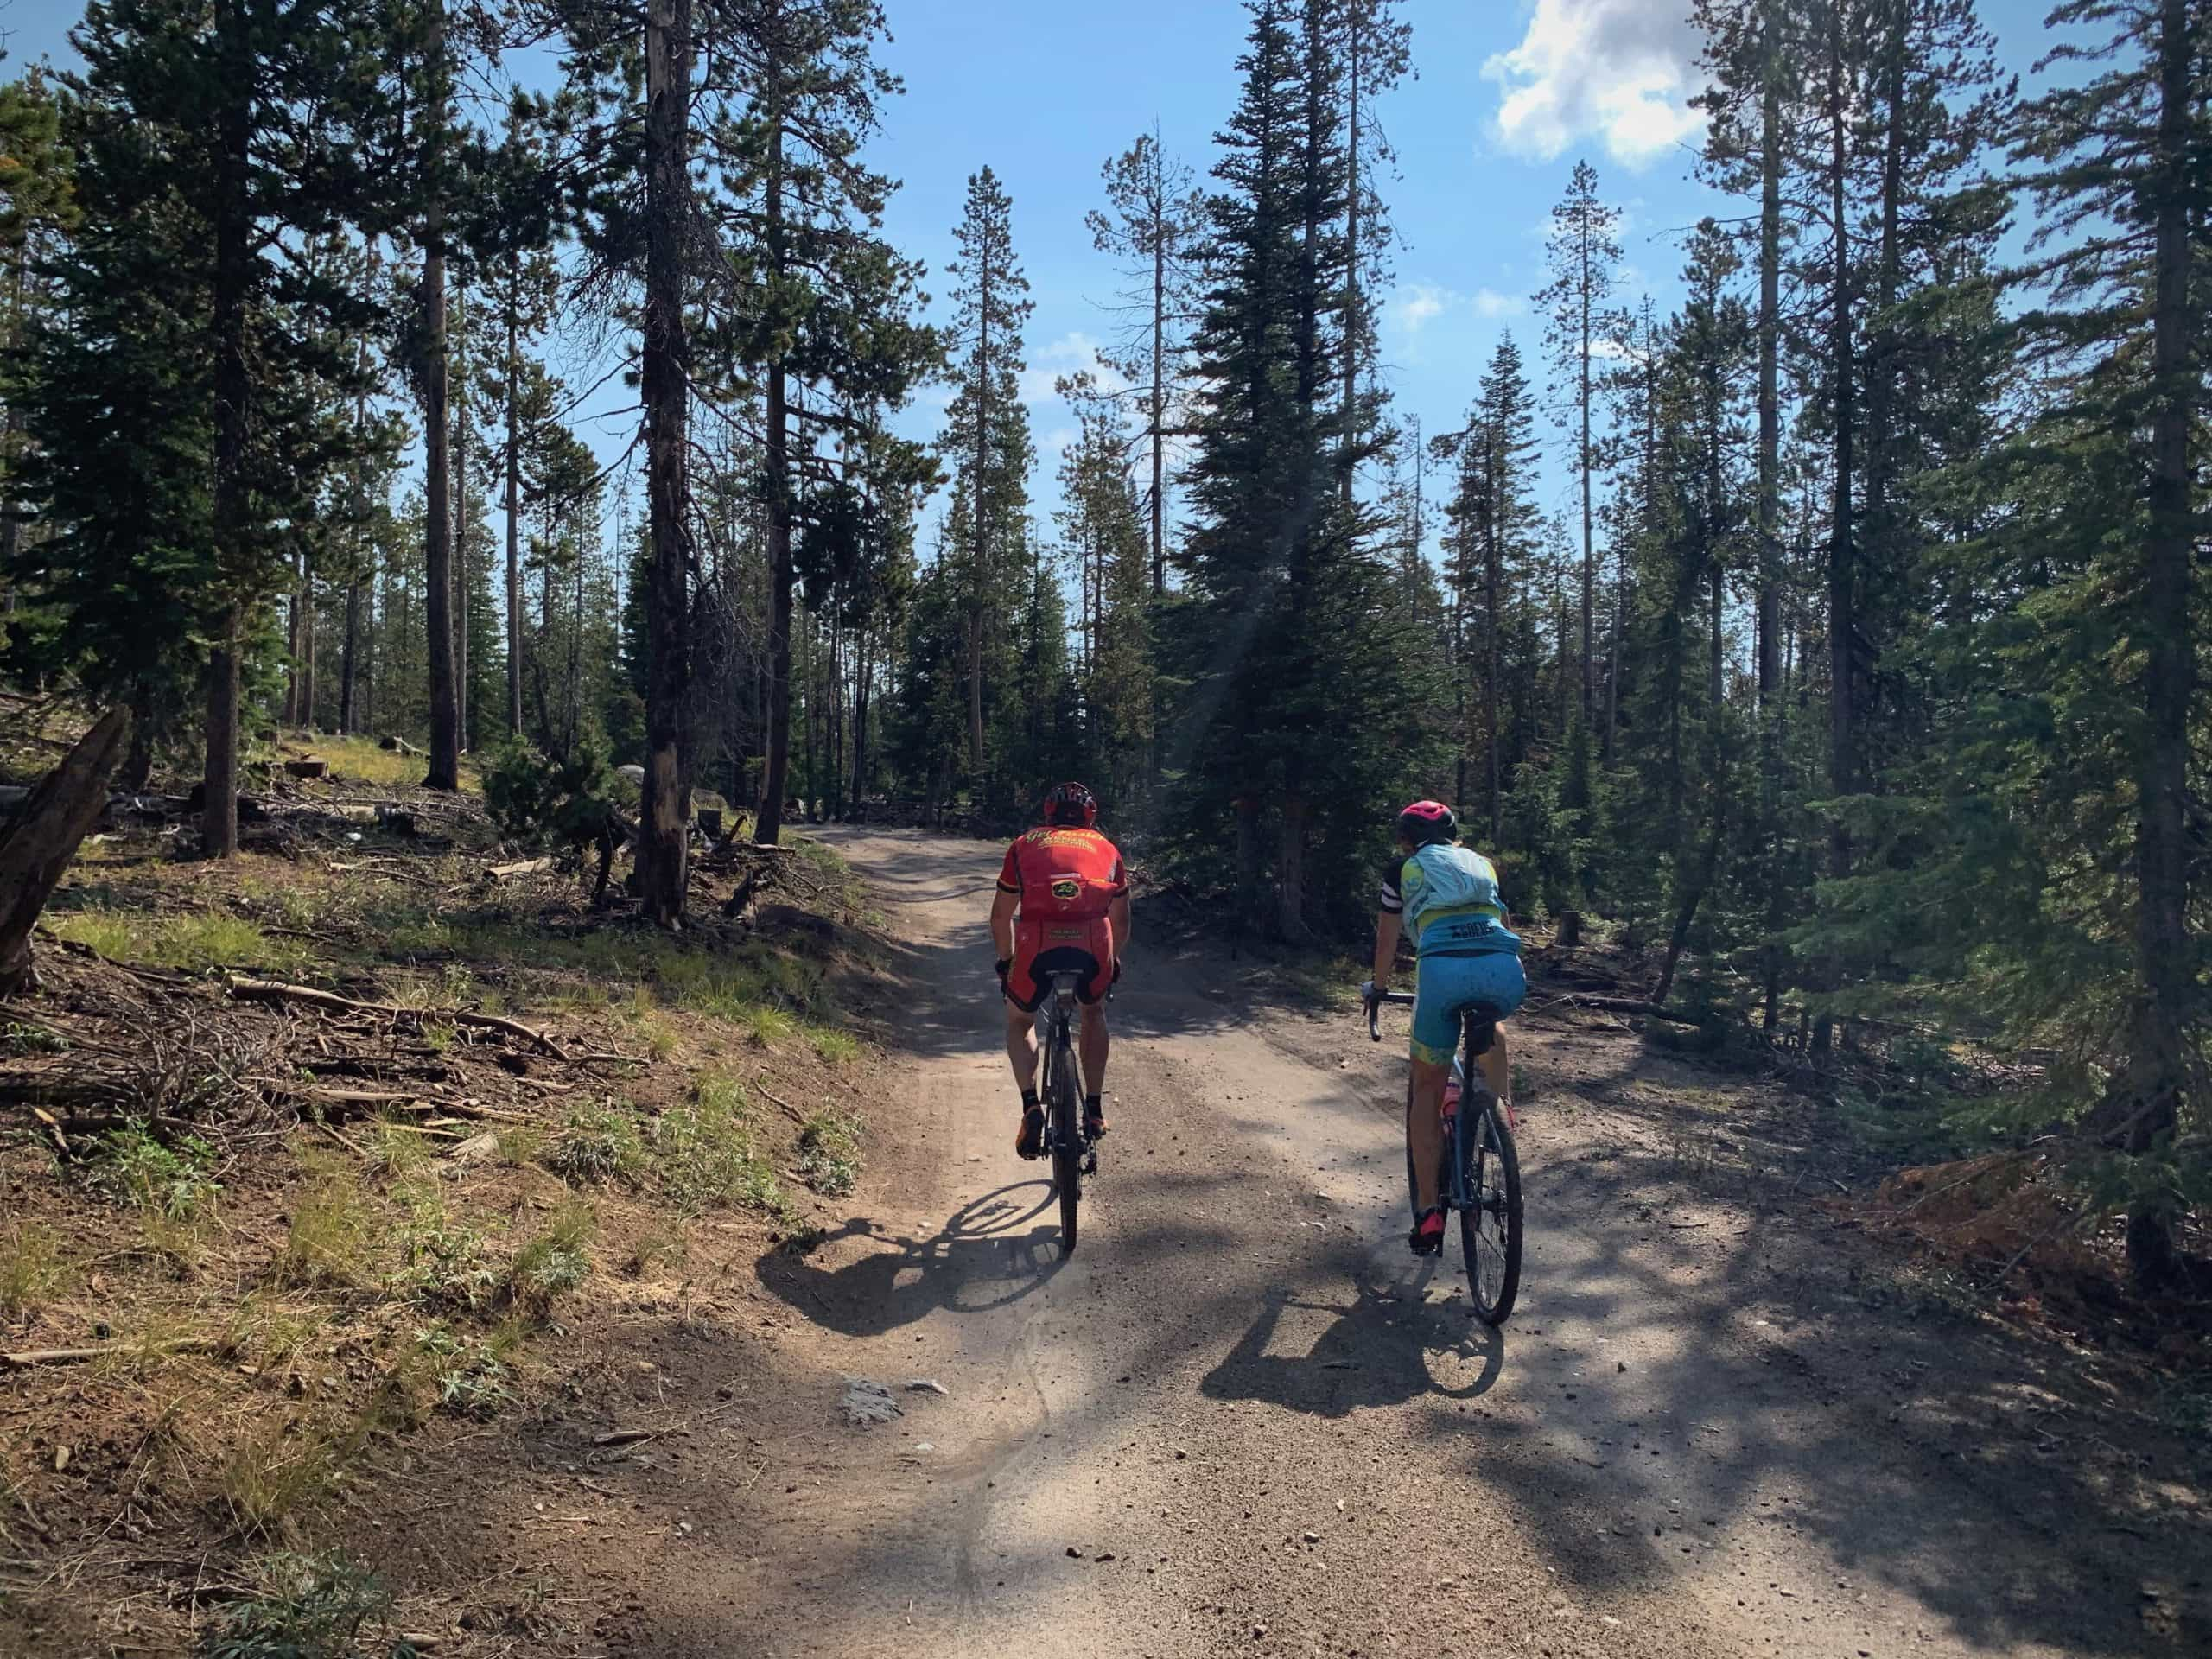 Two cyclists riding forest service roads on gravel bike near Bend, Oregon.